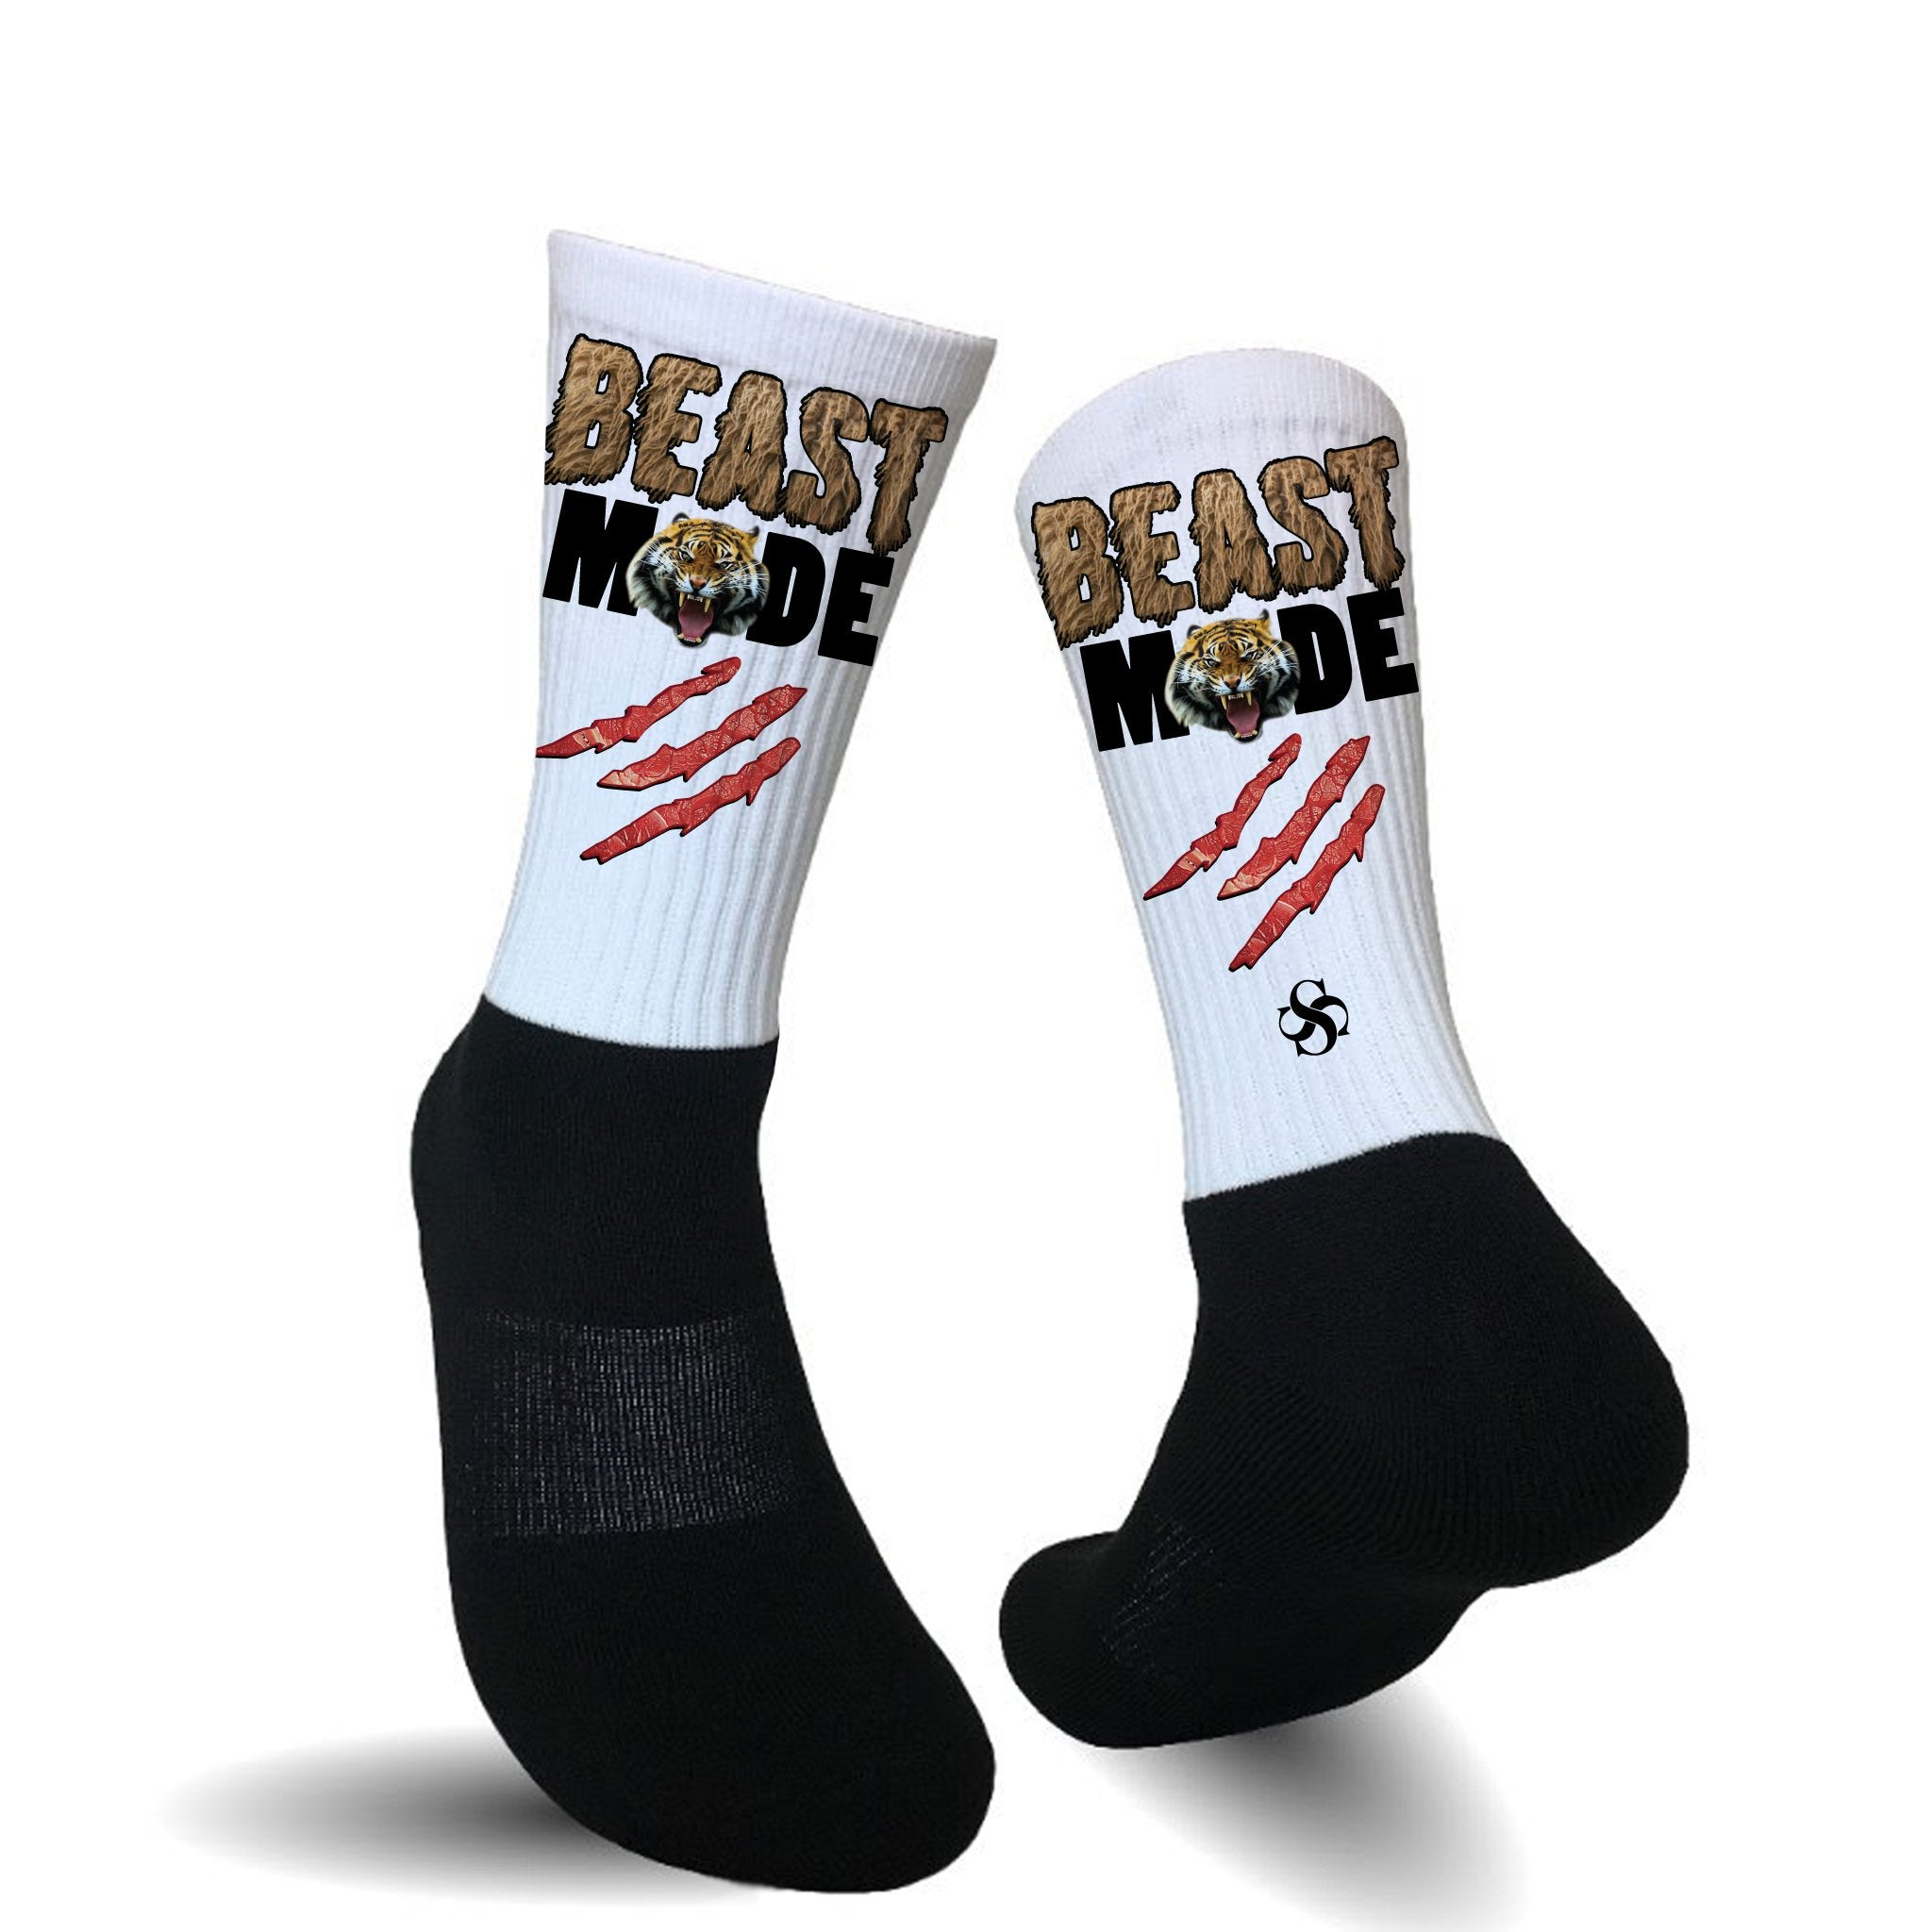 BEAST MODE Original- 2 Colorways